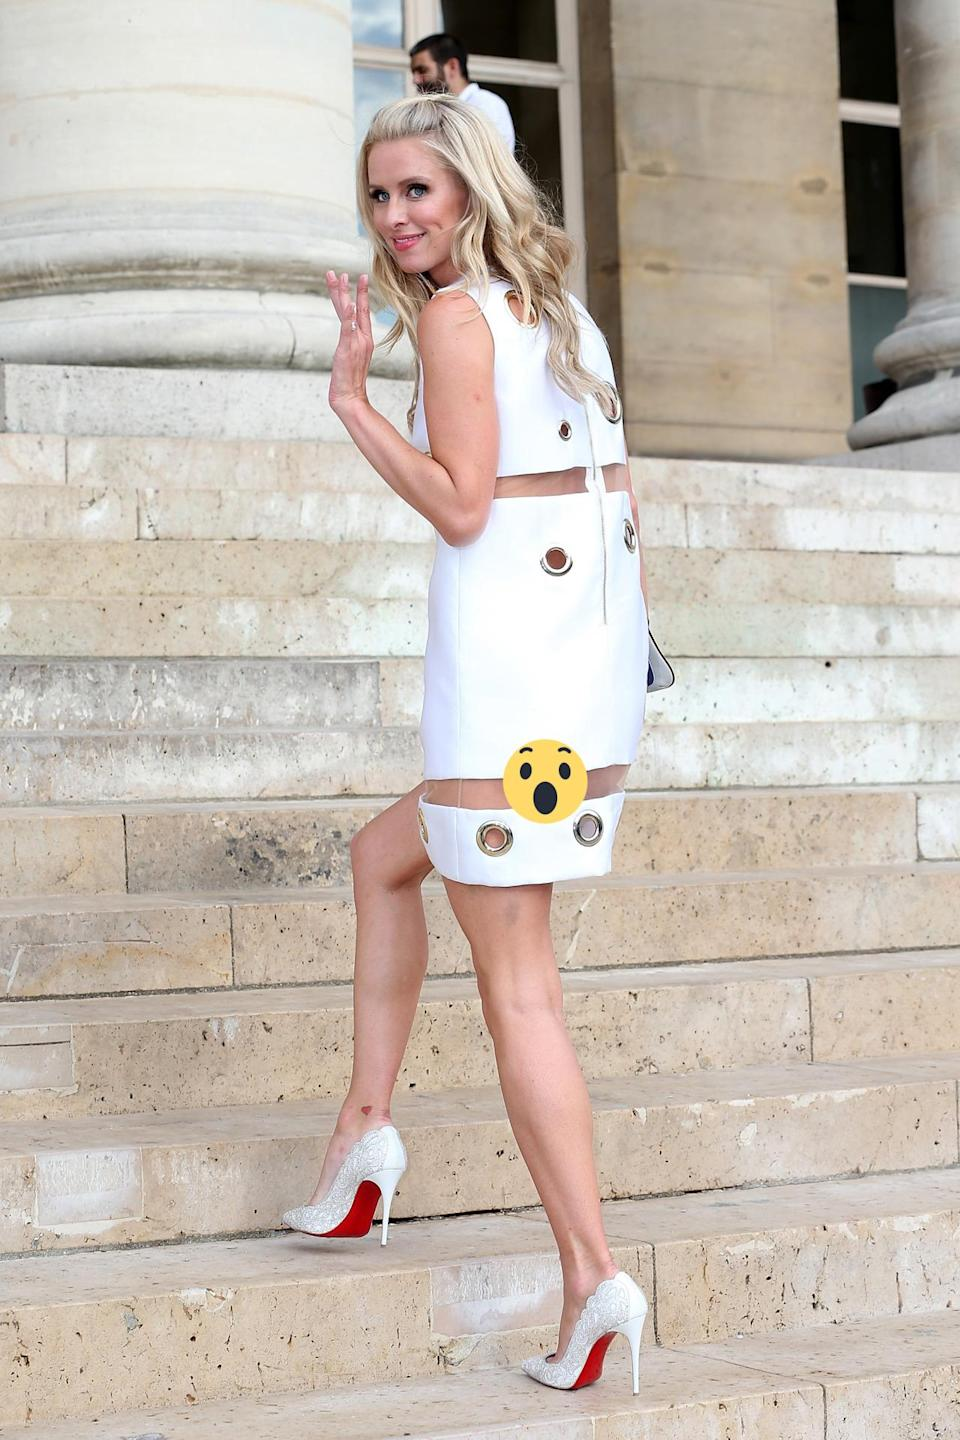 <p>Nicky's Versace mini dress may've showed off the socialite's enviable frame, but it also game onlookers a cheeky view of her behind as she climbed the steps to the luxe label's haute couture fashion show. <i>[Photo: Getty]</i></p>